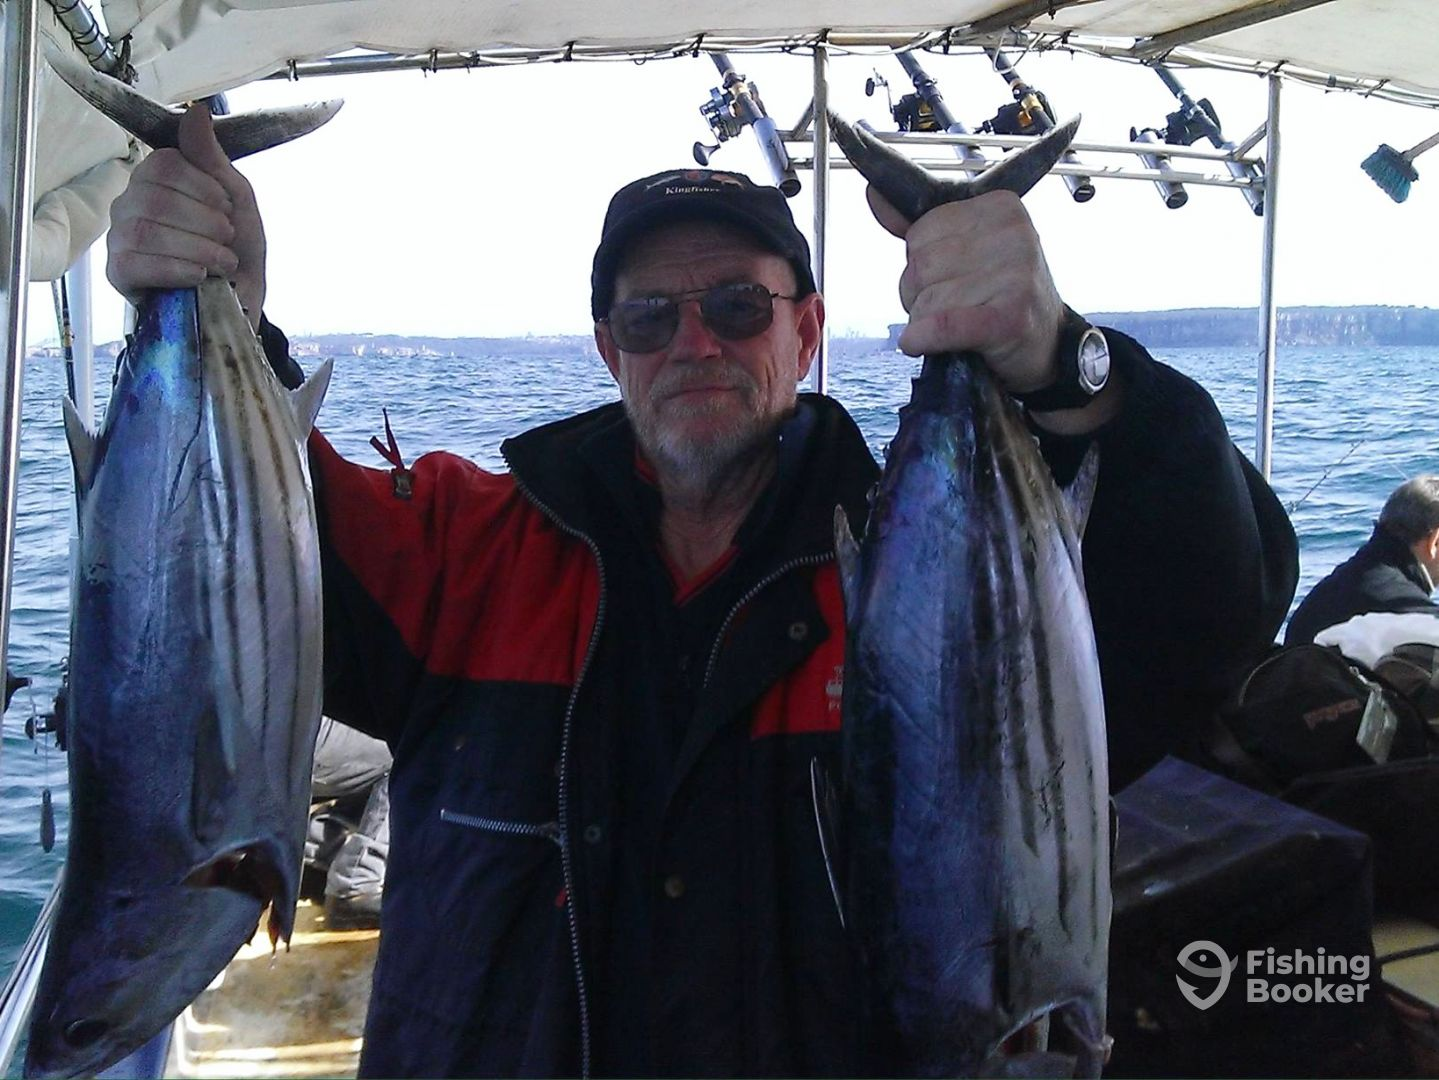 Captain Colin with a pair of Bonito on the lures